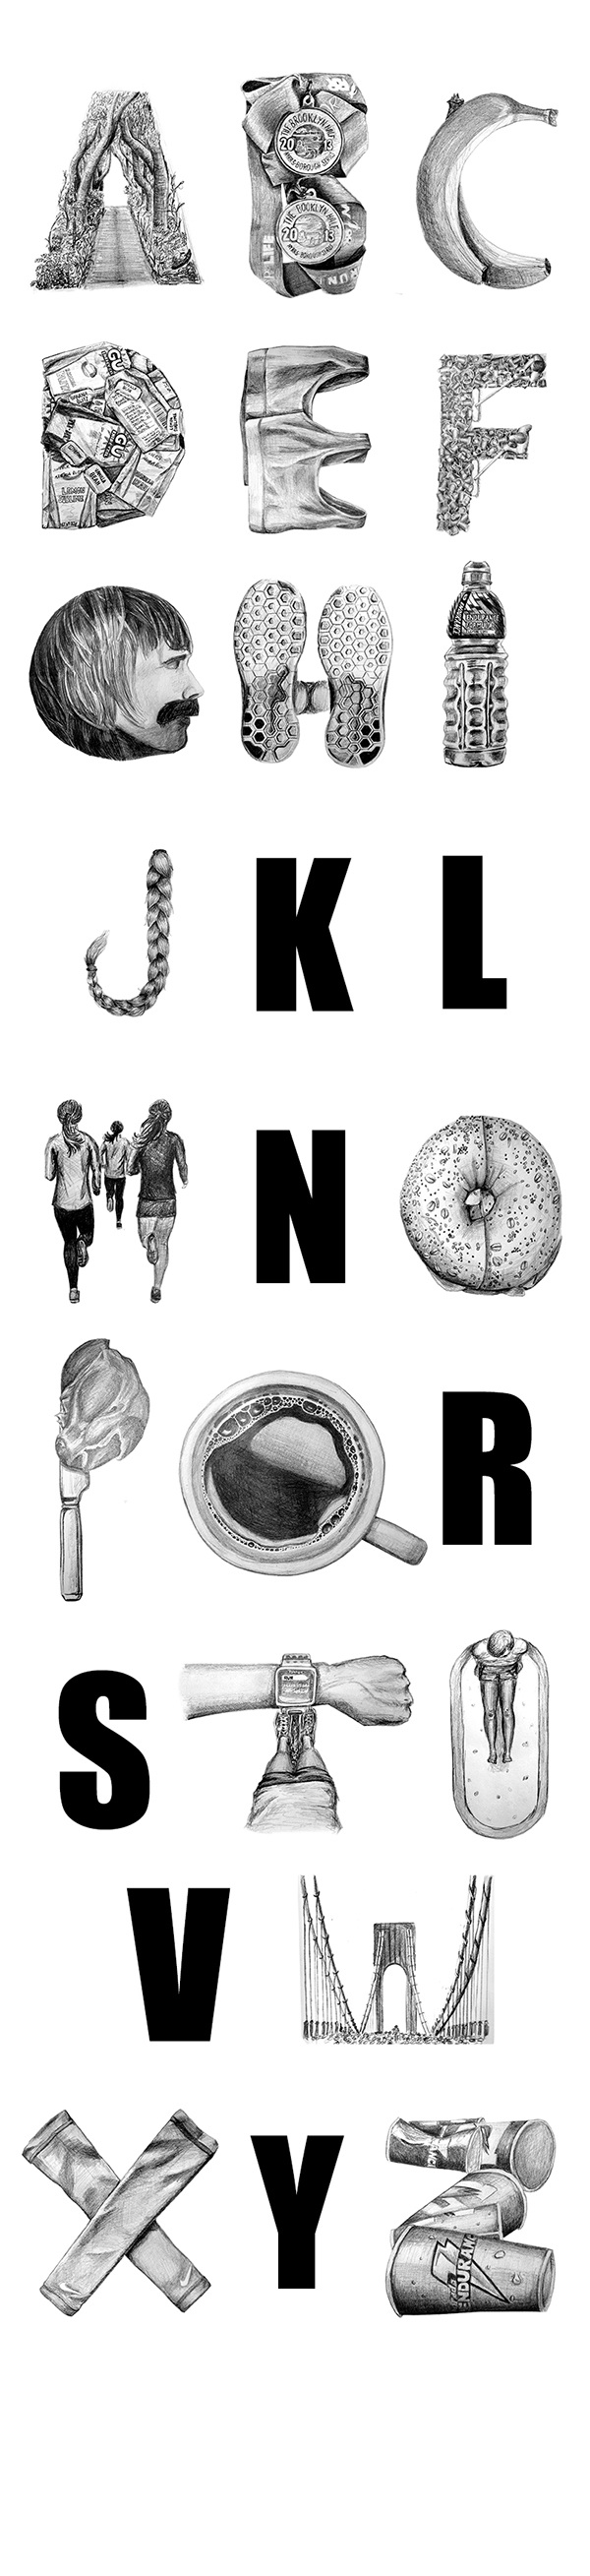 Runners_Alphabet_Letters_Illustrated_Of_Items_Related_To_Runners_by_Sarah_FitzPatrick_2014_11